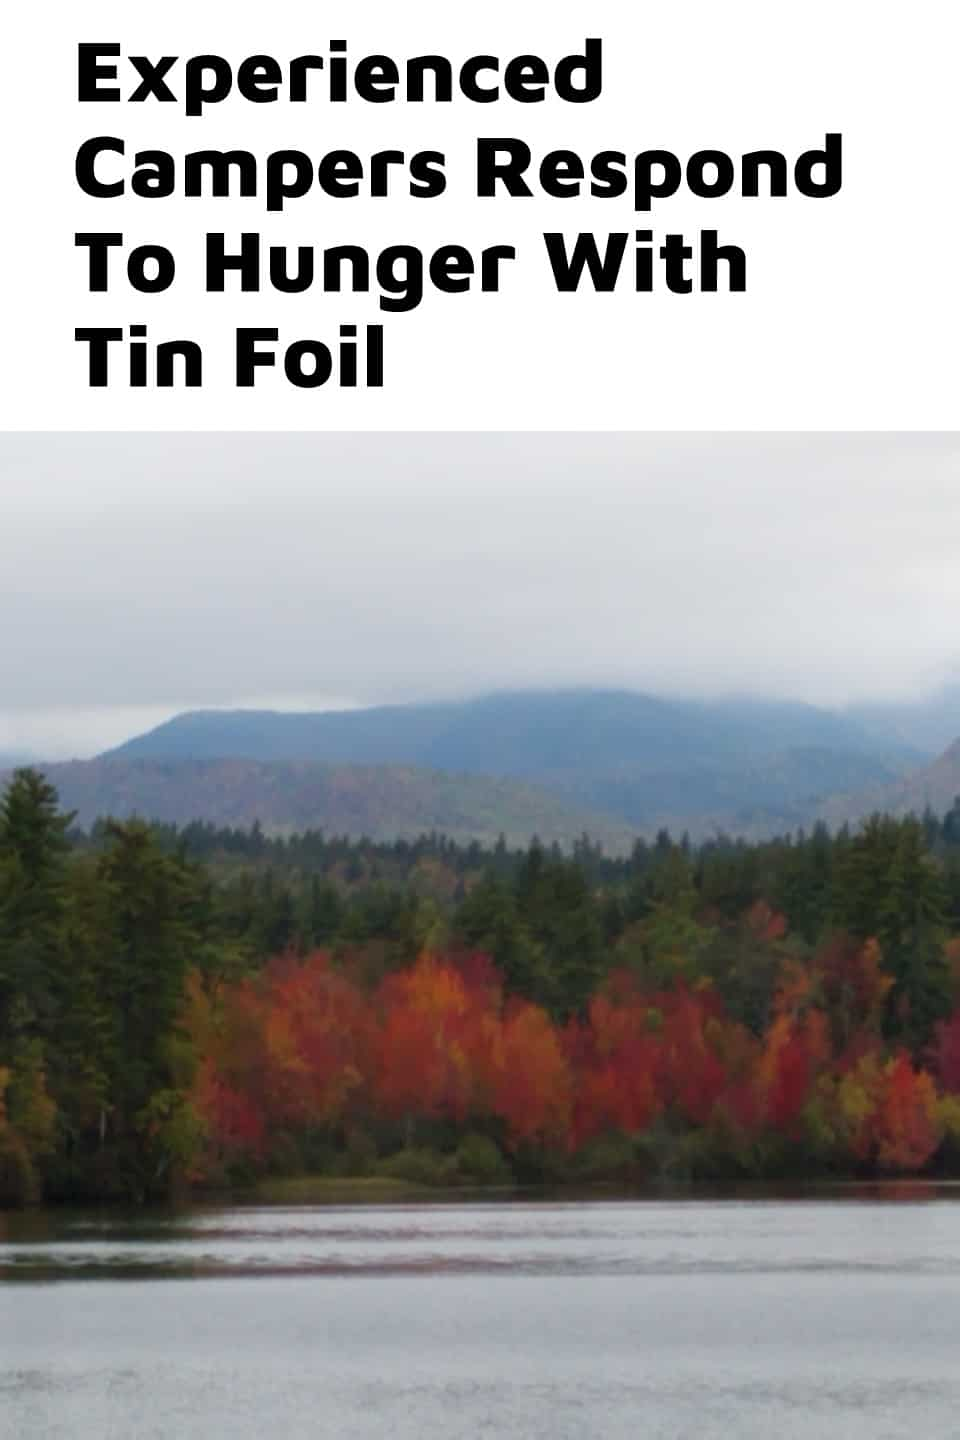 Pinterest image for Experienced Campers Respond To Hunger With Tin Foil